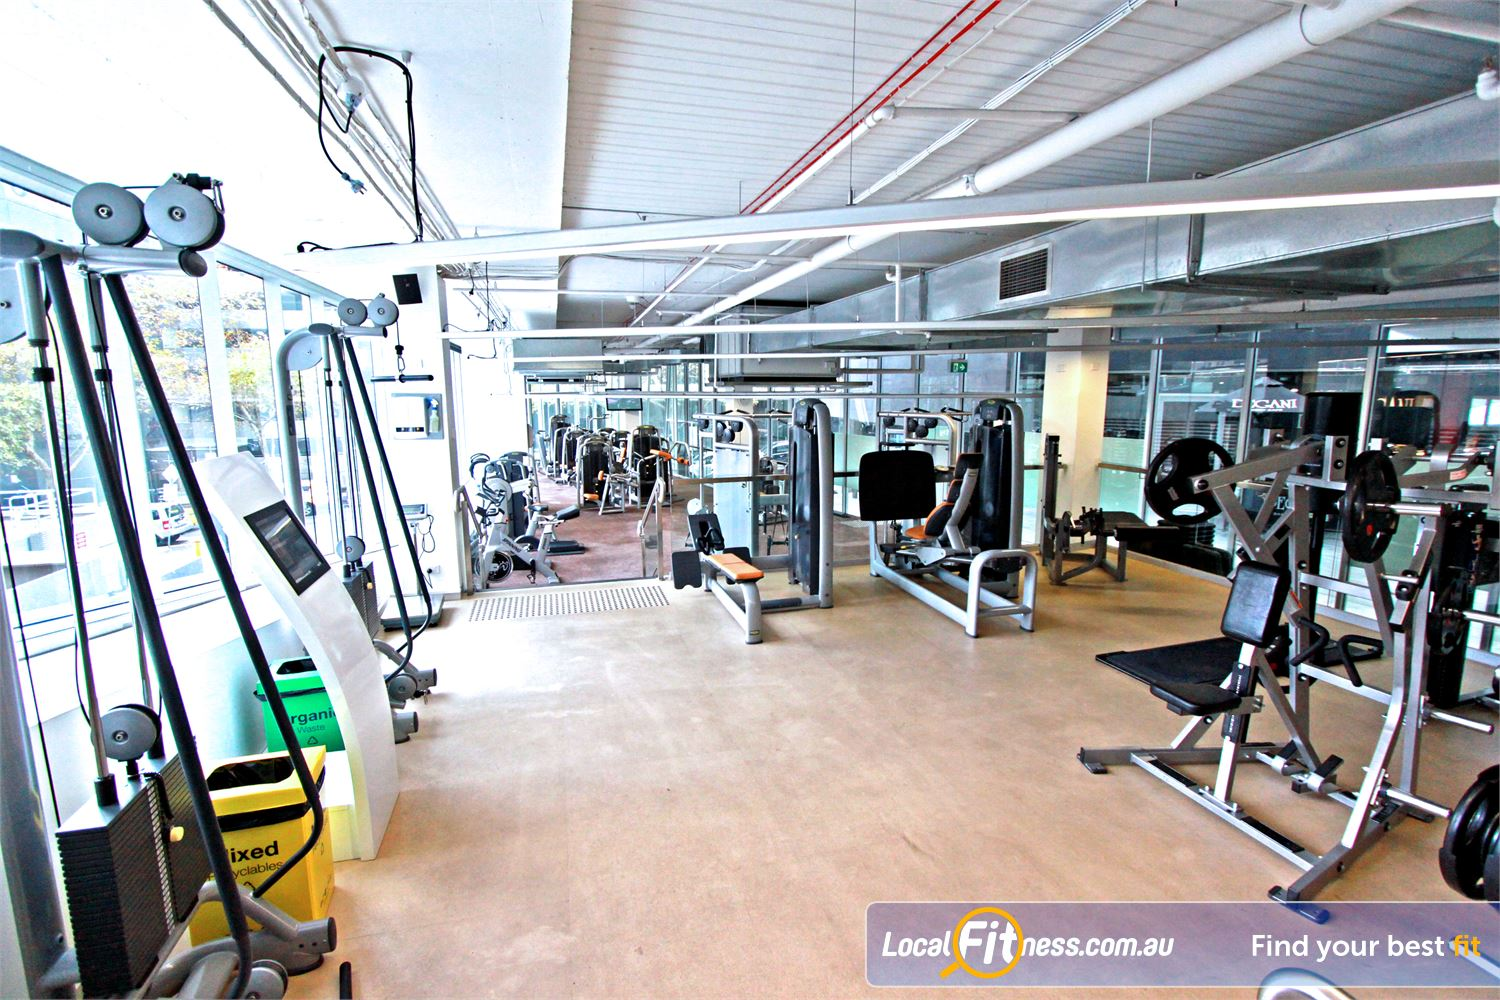 South Pacific Health Clubs Near Southbank A full range of pin-loaded and plate loading machines from Technogym and Life Fitness.